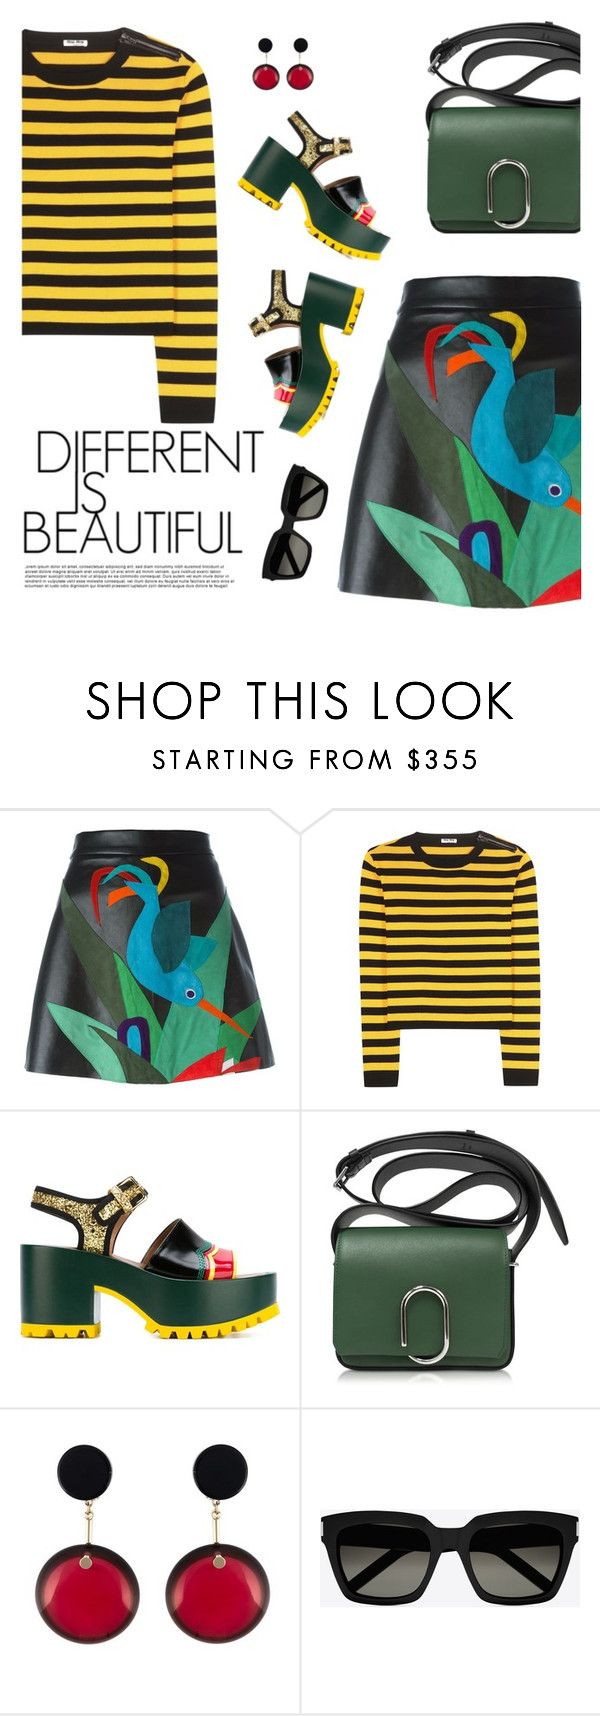 """Different is Beautiful"" by dira-purwanto ❤ liked on Polyvore featuring P.A.R.O.S.H., Miu Miu, Marni, 3.1 Phillip Lim and Yves Saint Laurent"